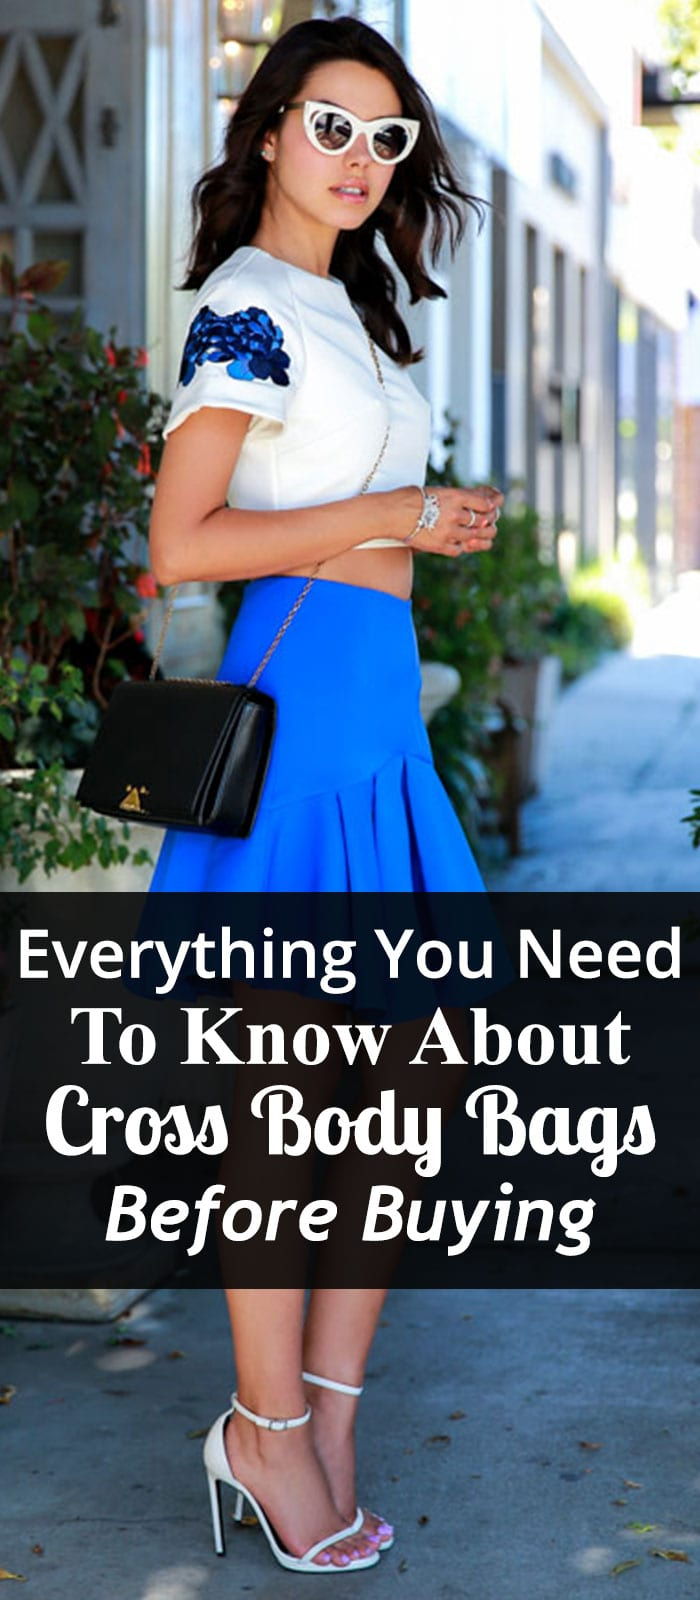 Everything You Need To Know About Cross Body Bags Before Buying